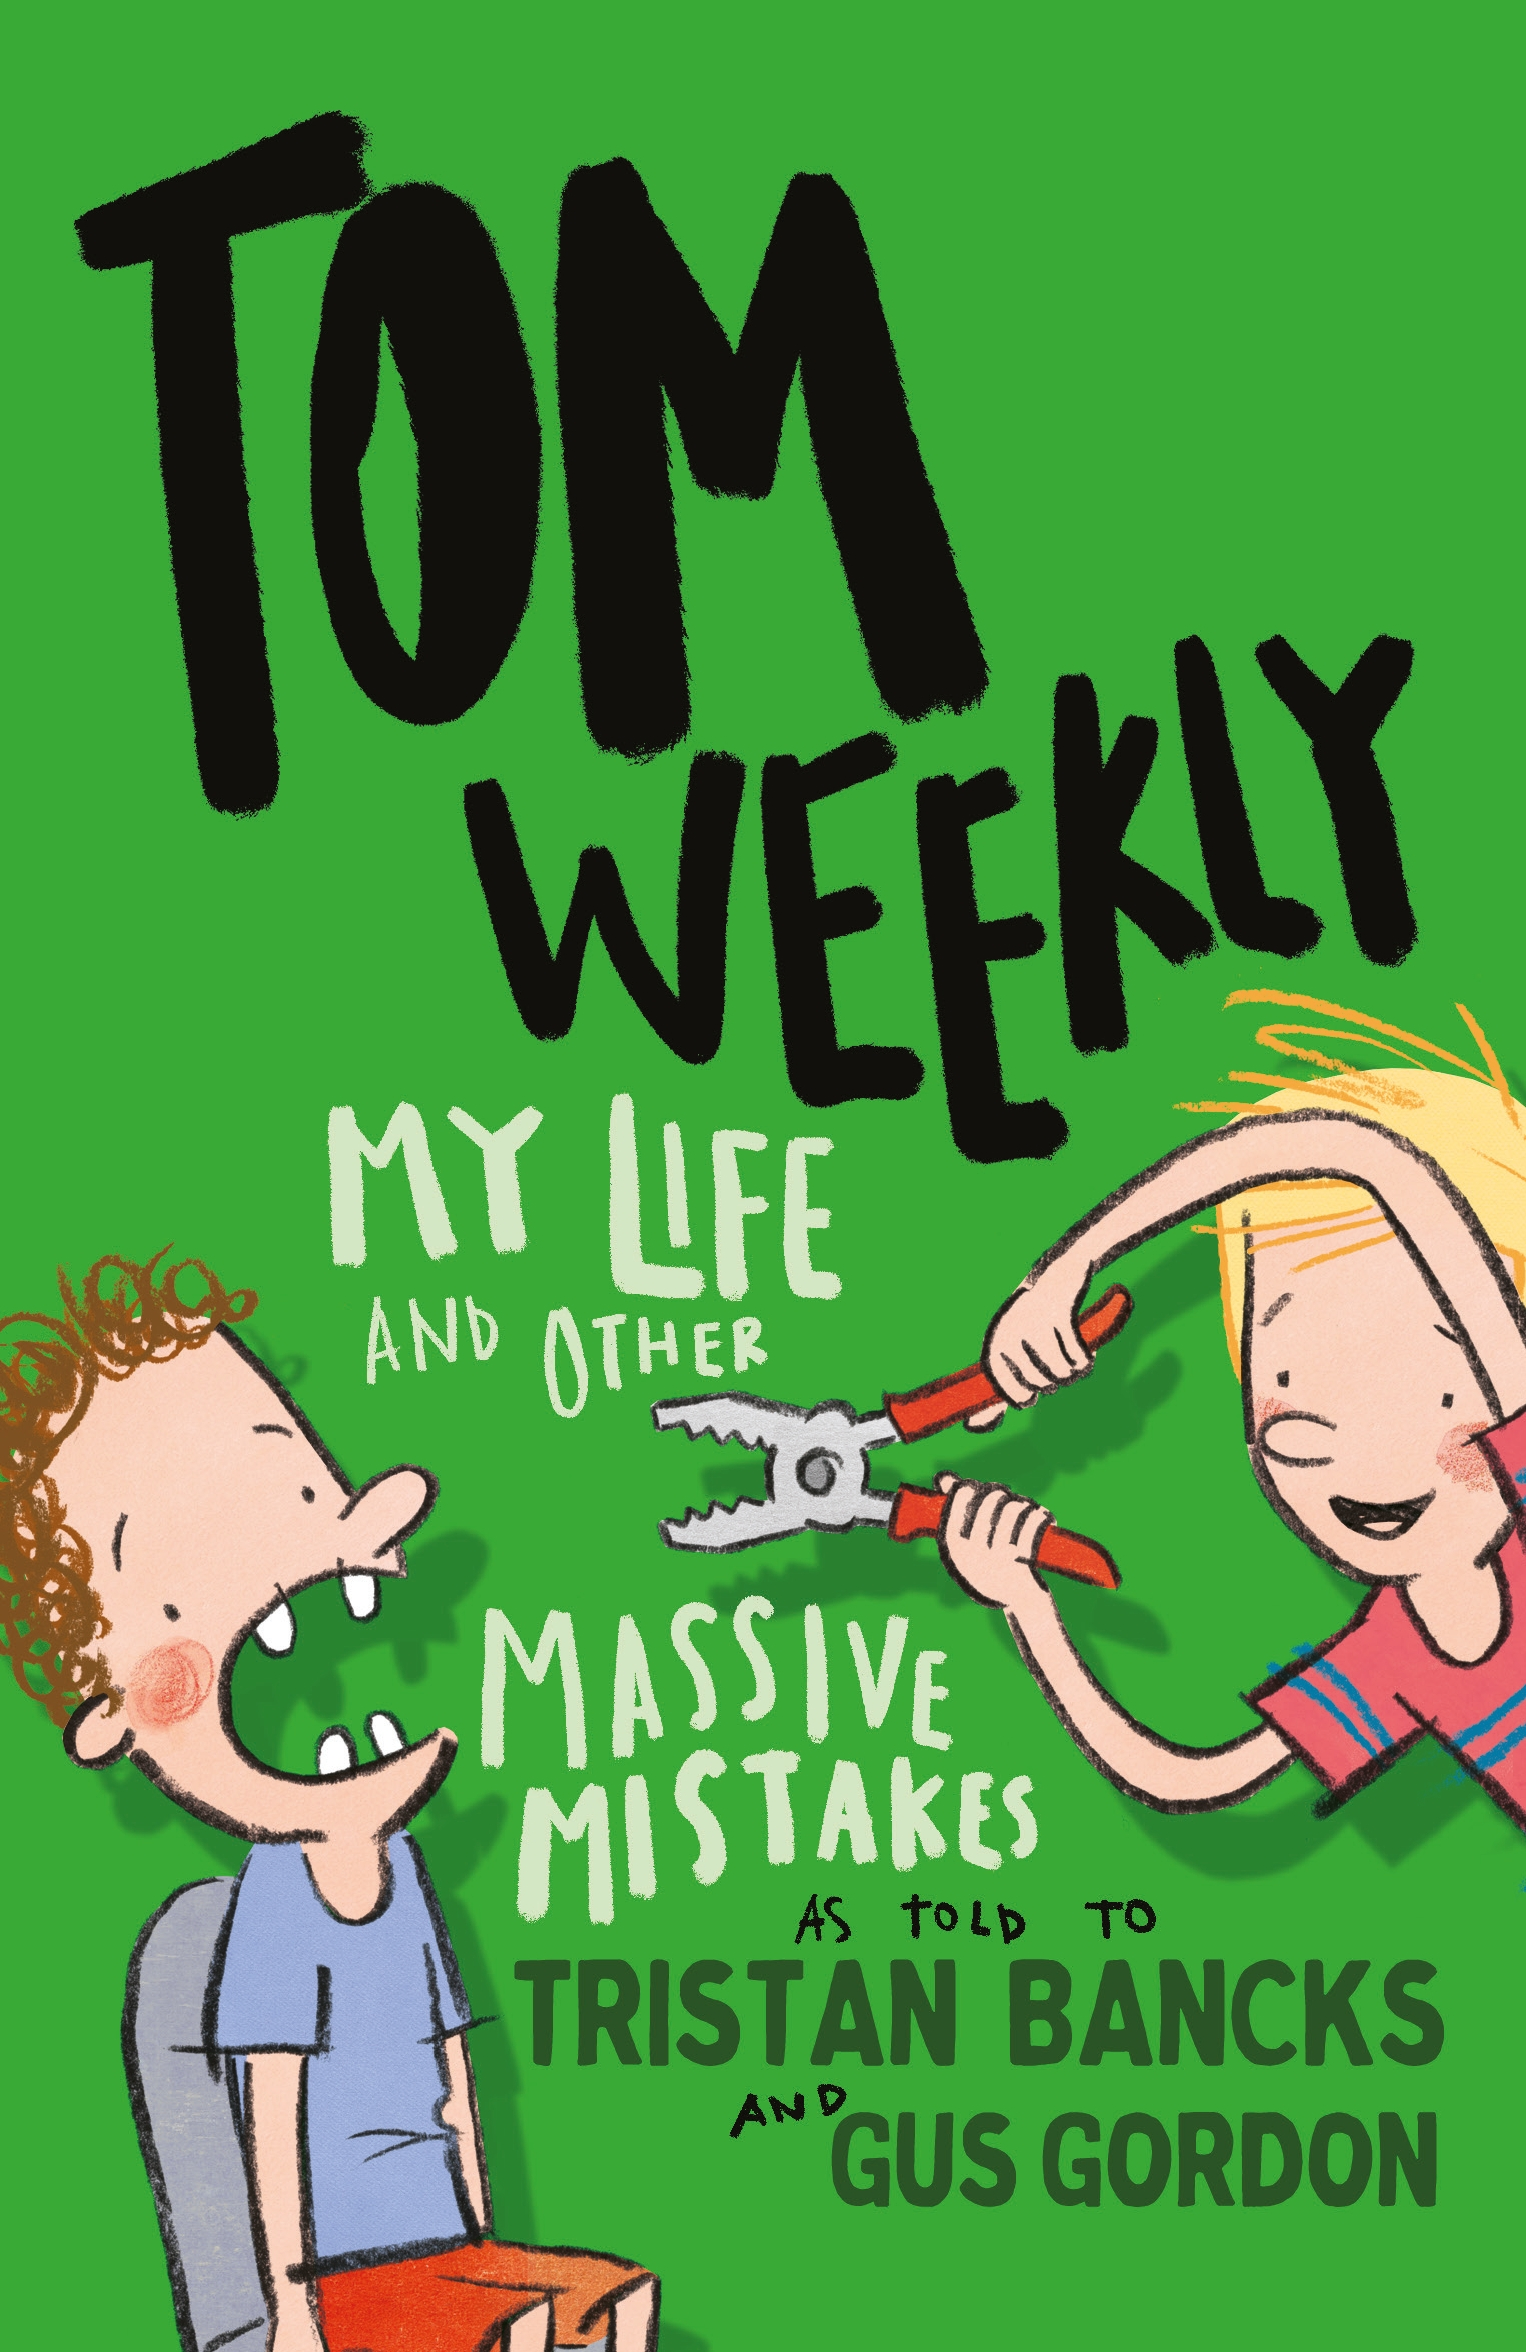 Tom Weekly 3My Life and Other Massive Mistakes